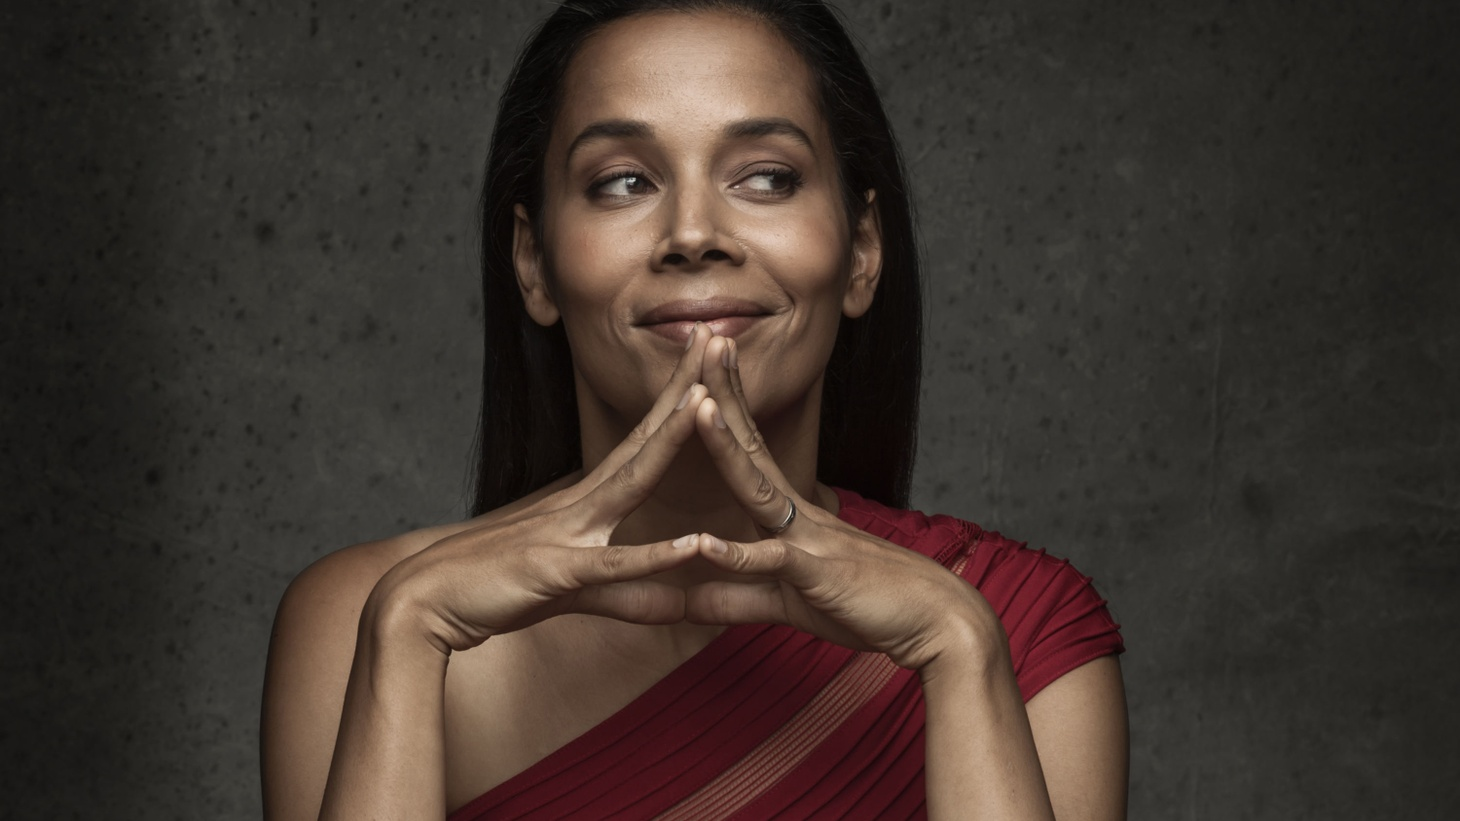 Rhiannon Giddens is a member of the acclaimed folk band Carolina Chocolate Drops, as well as the all-star collective The New Basement Tapes. She strikes out on her own with a new solo record produced by T Bone Burnett.